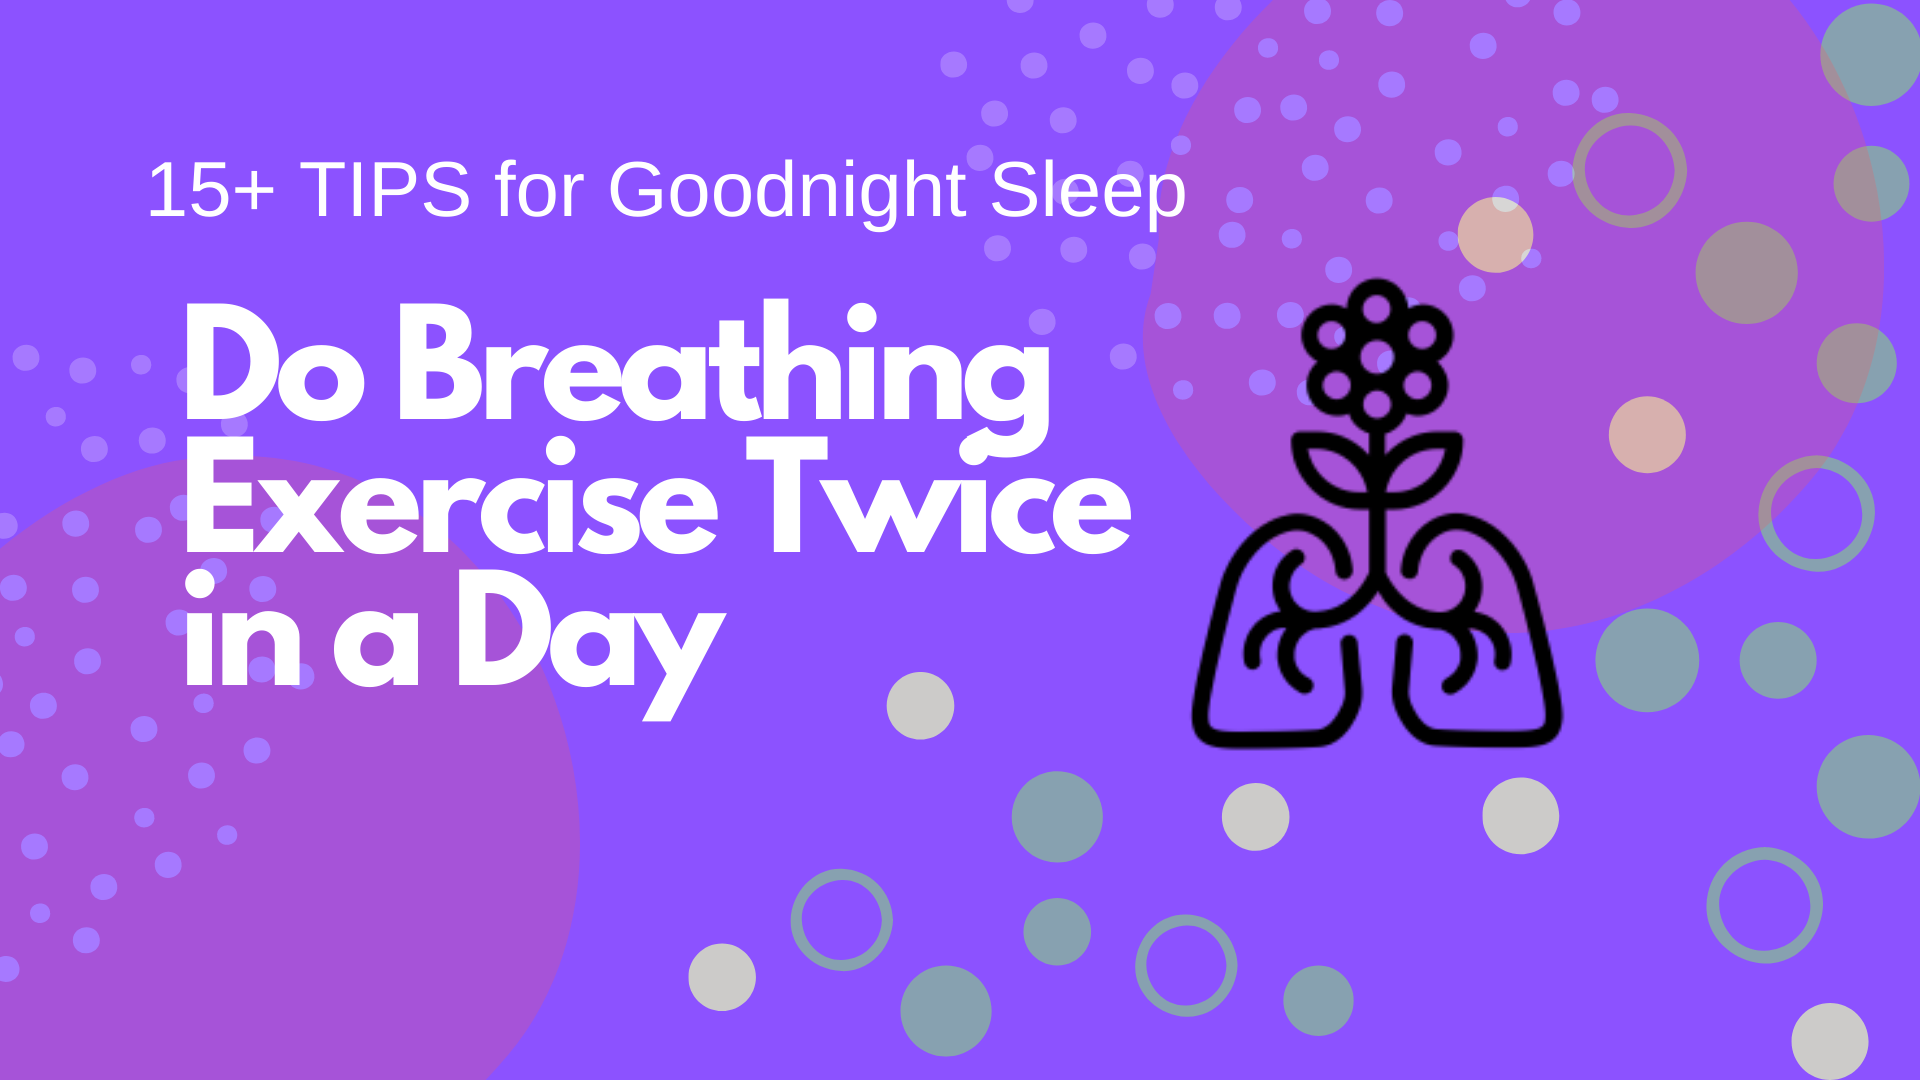 Do Breathing Exercise Twice in a Day